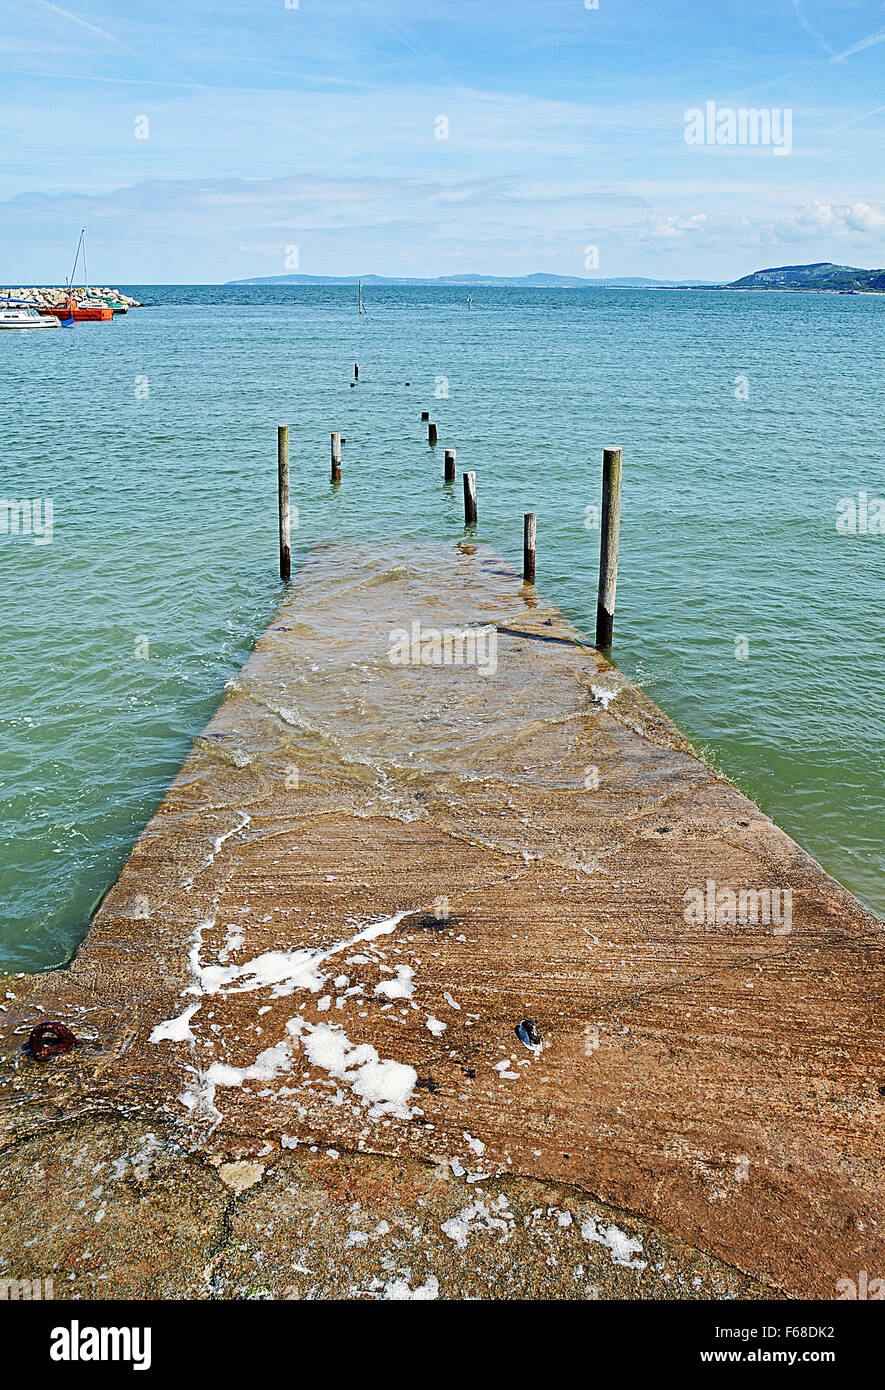 The harbour at Rhos-on-Sea, showing the main jetty. - Stock Image